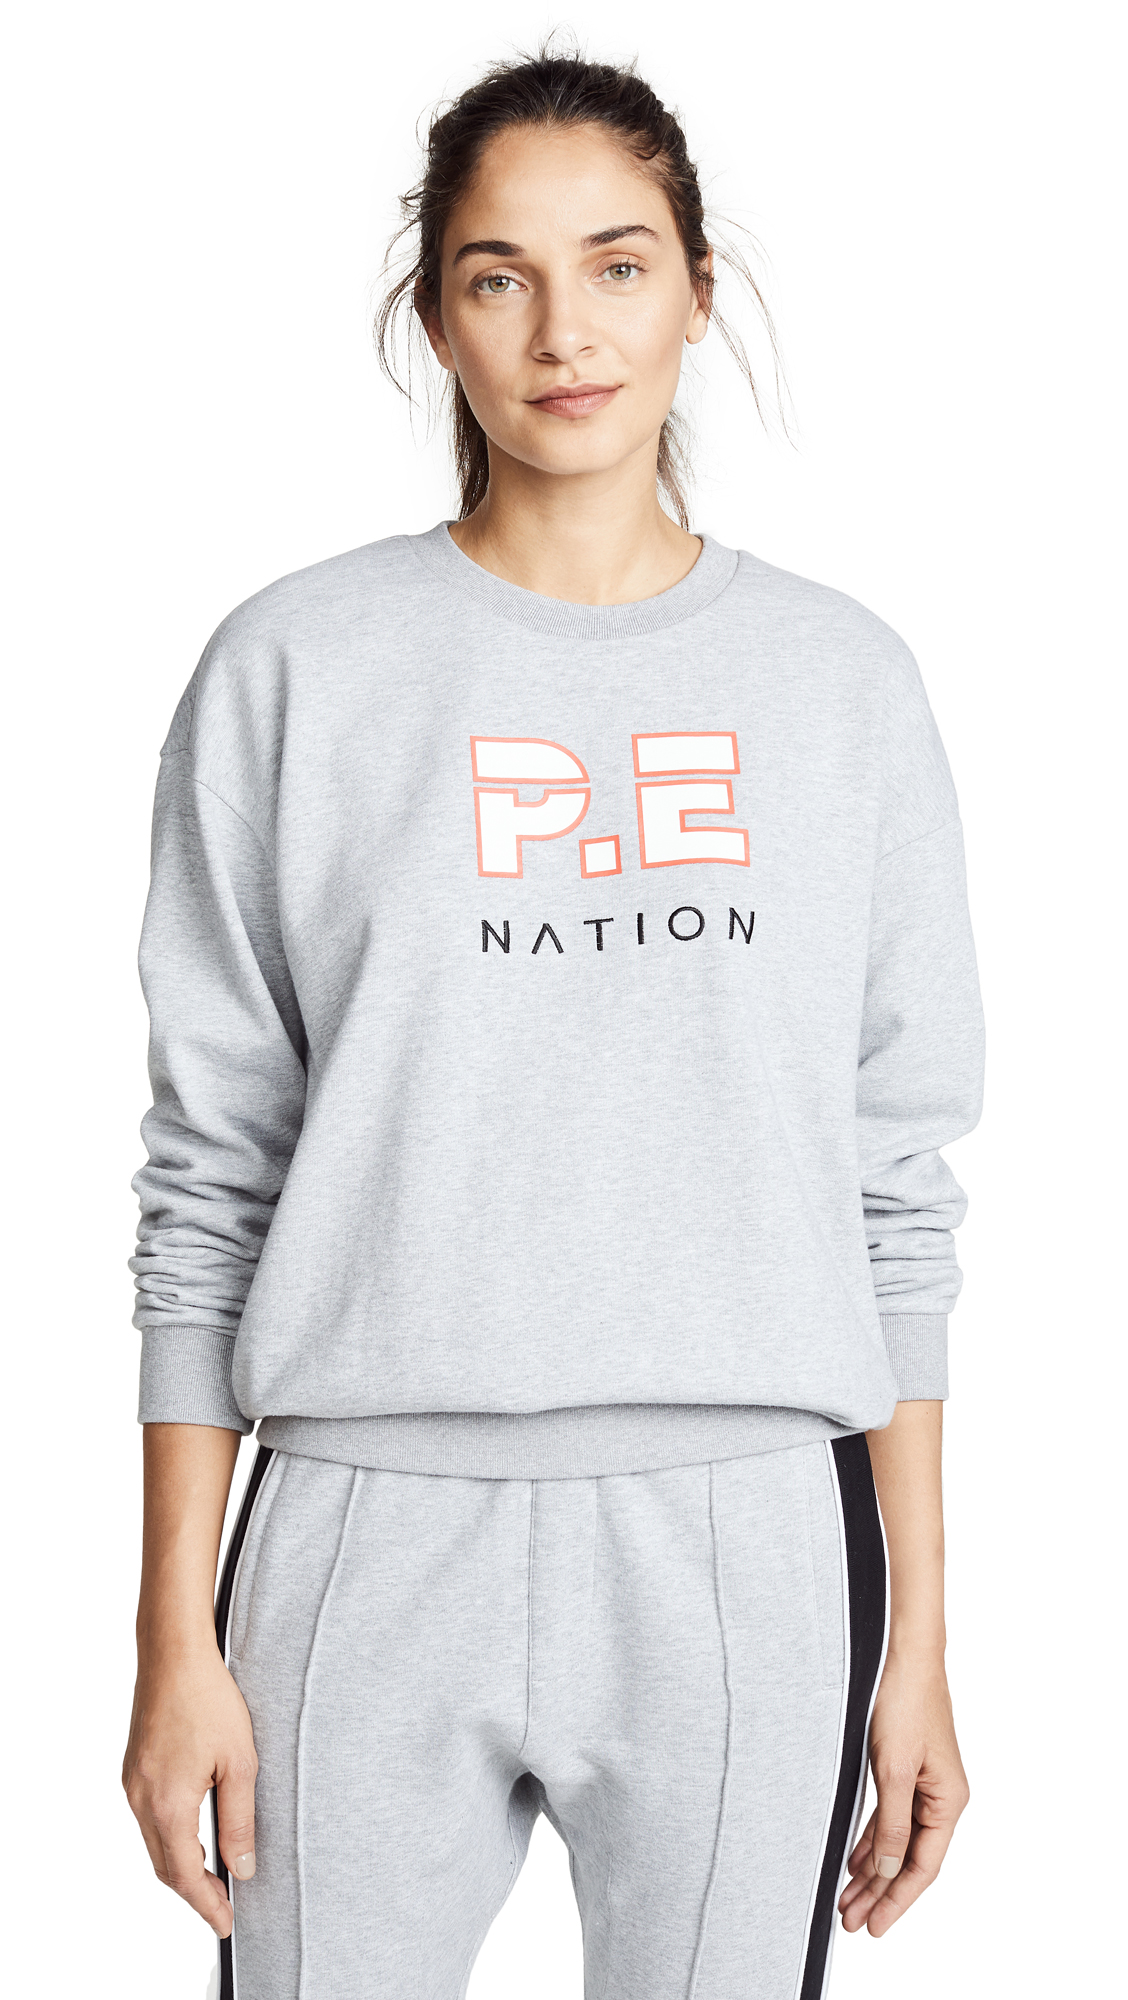 P.E NATION Heads Up Sweatshirt In Grey Marl